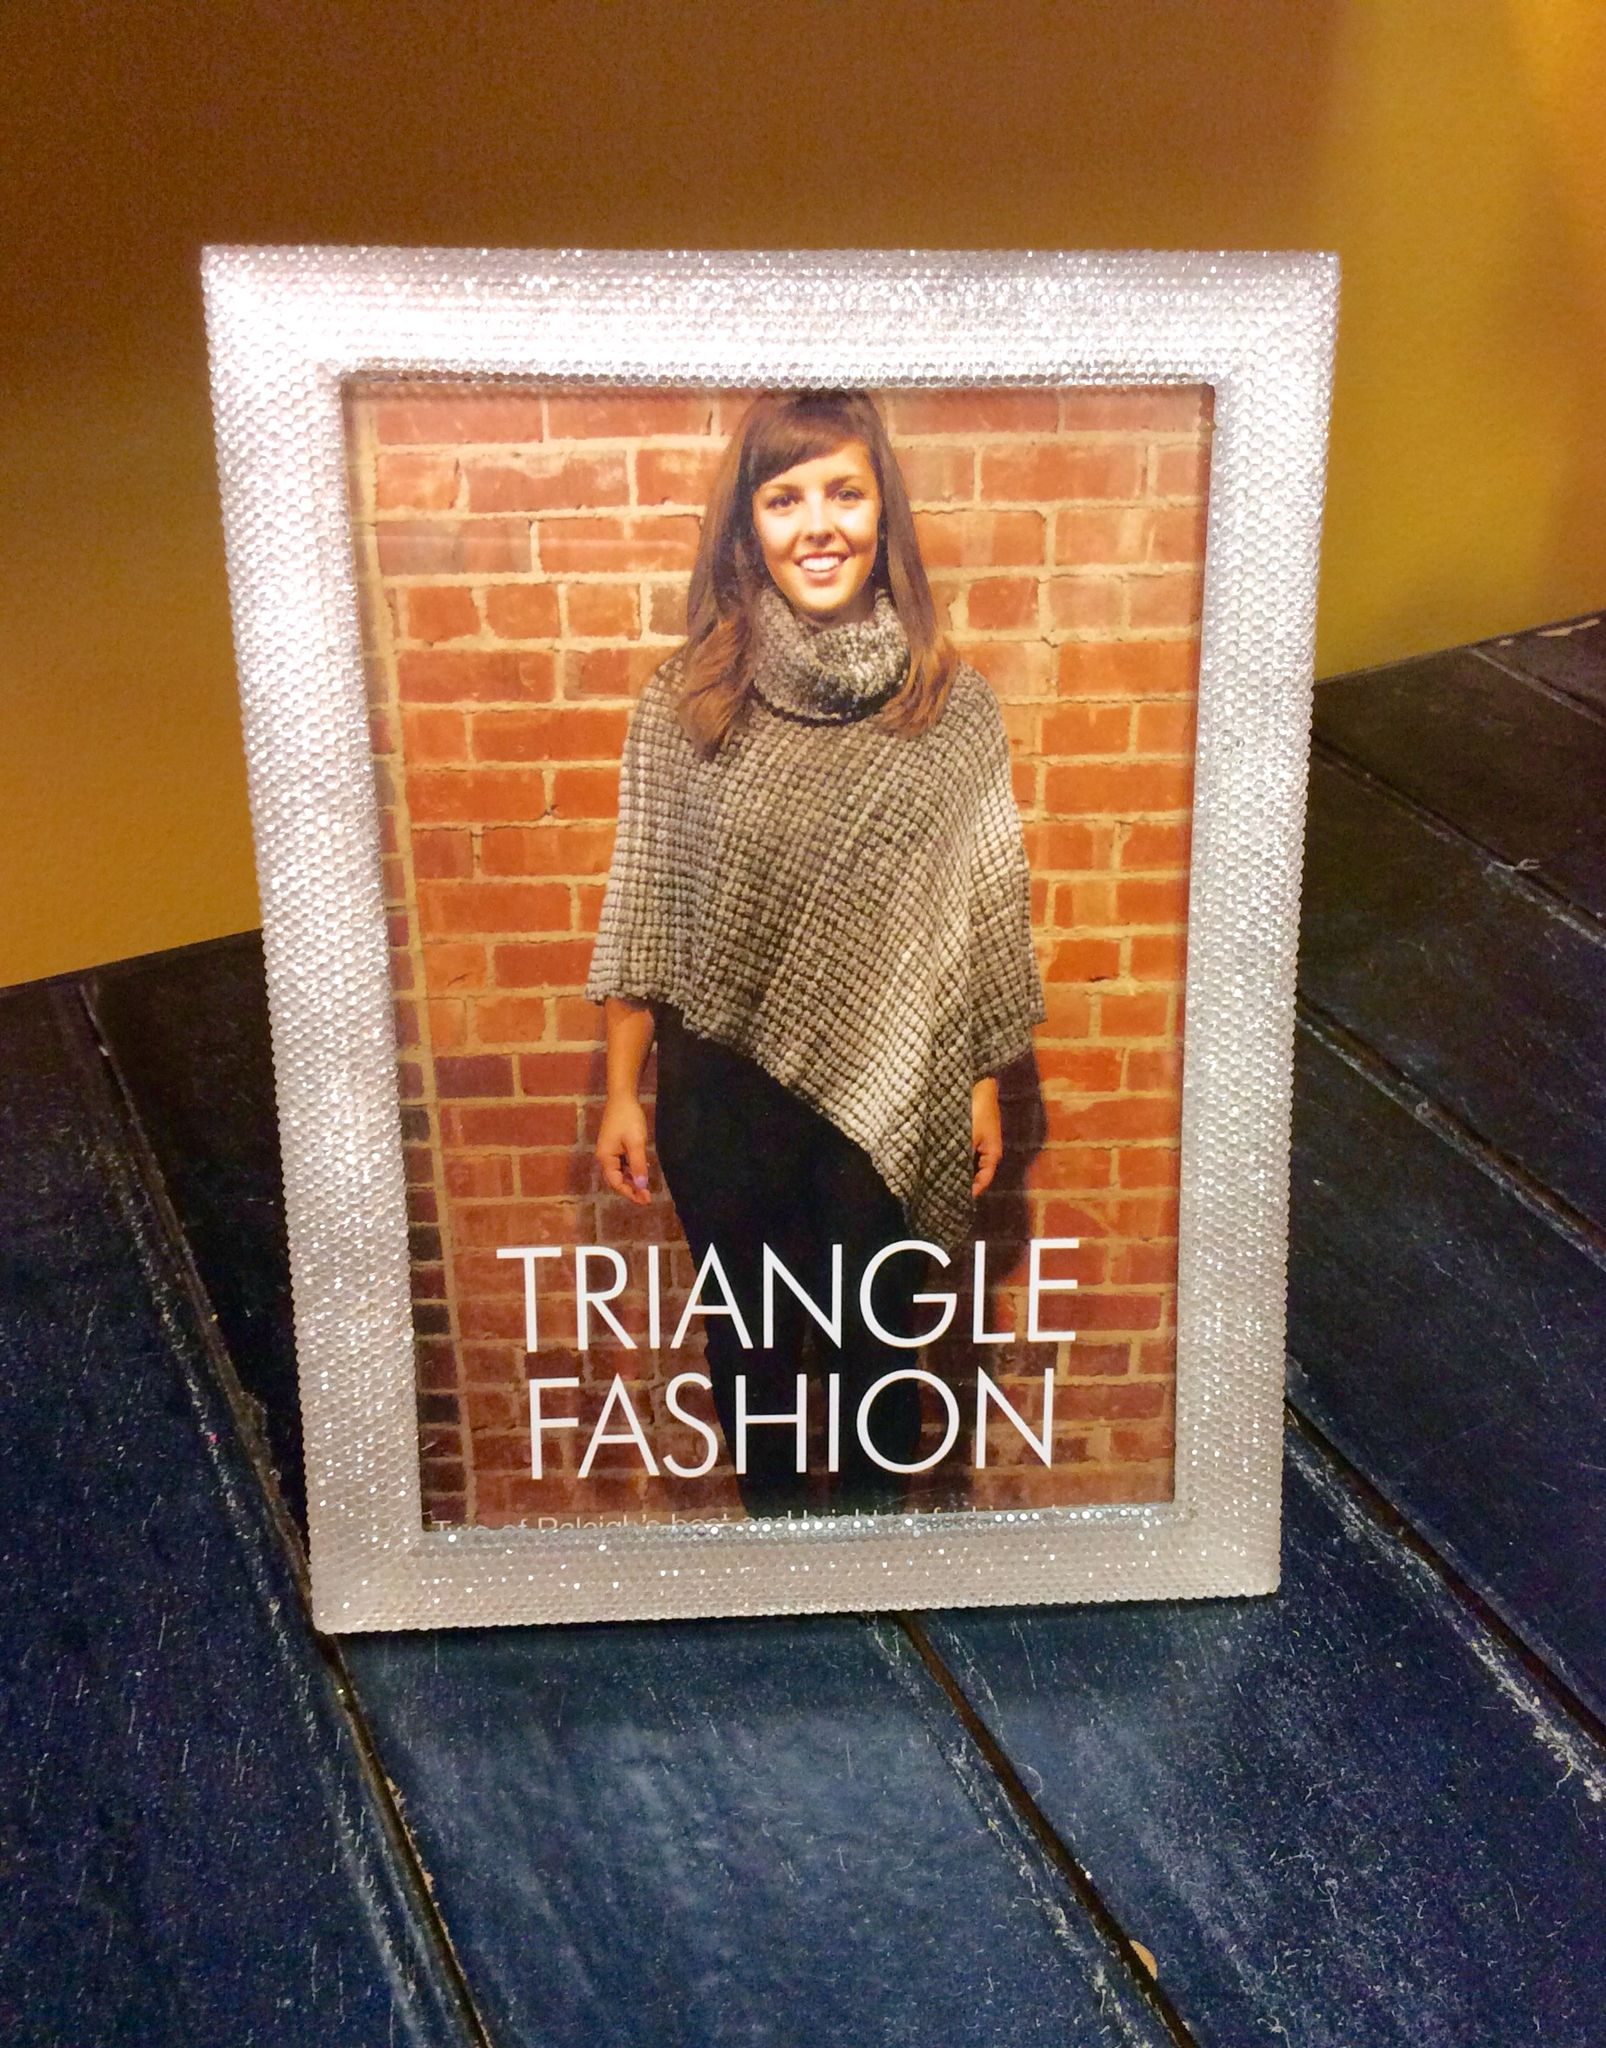 $20 ::: Let this #sparkly picture frame add some #glam to your home! Call us at 919.462.9618 so we can ship to you!